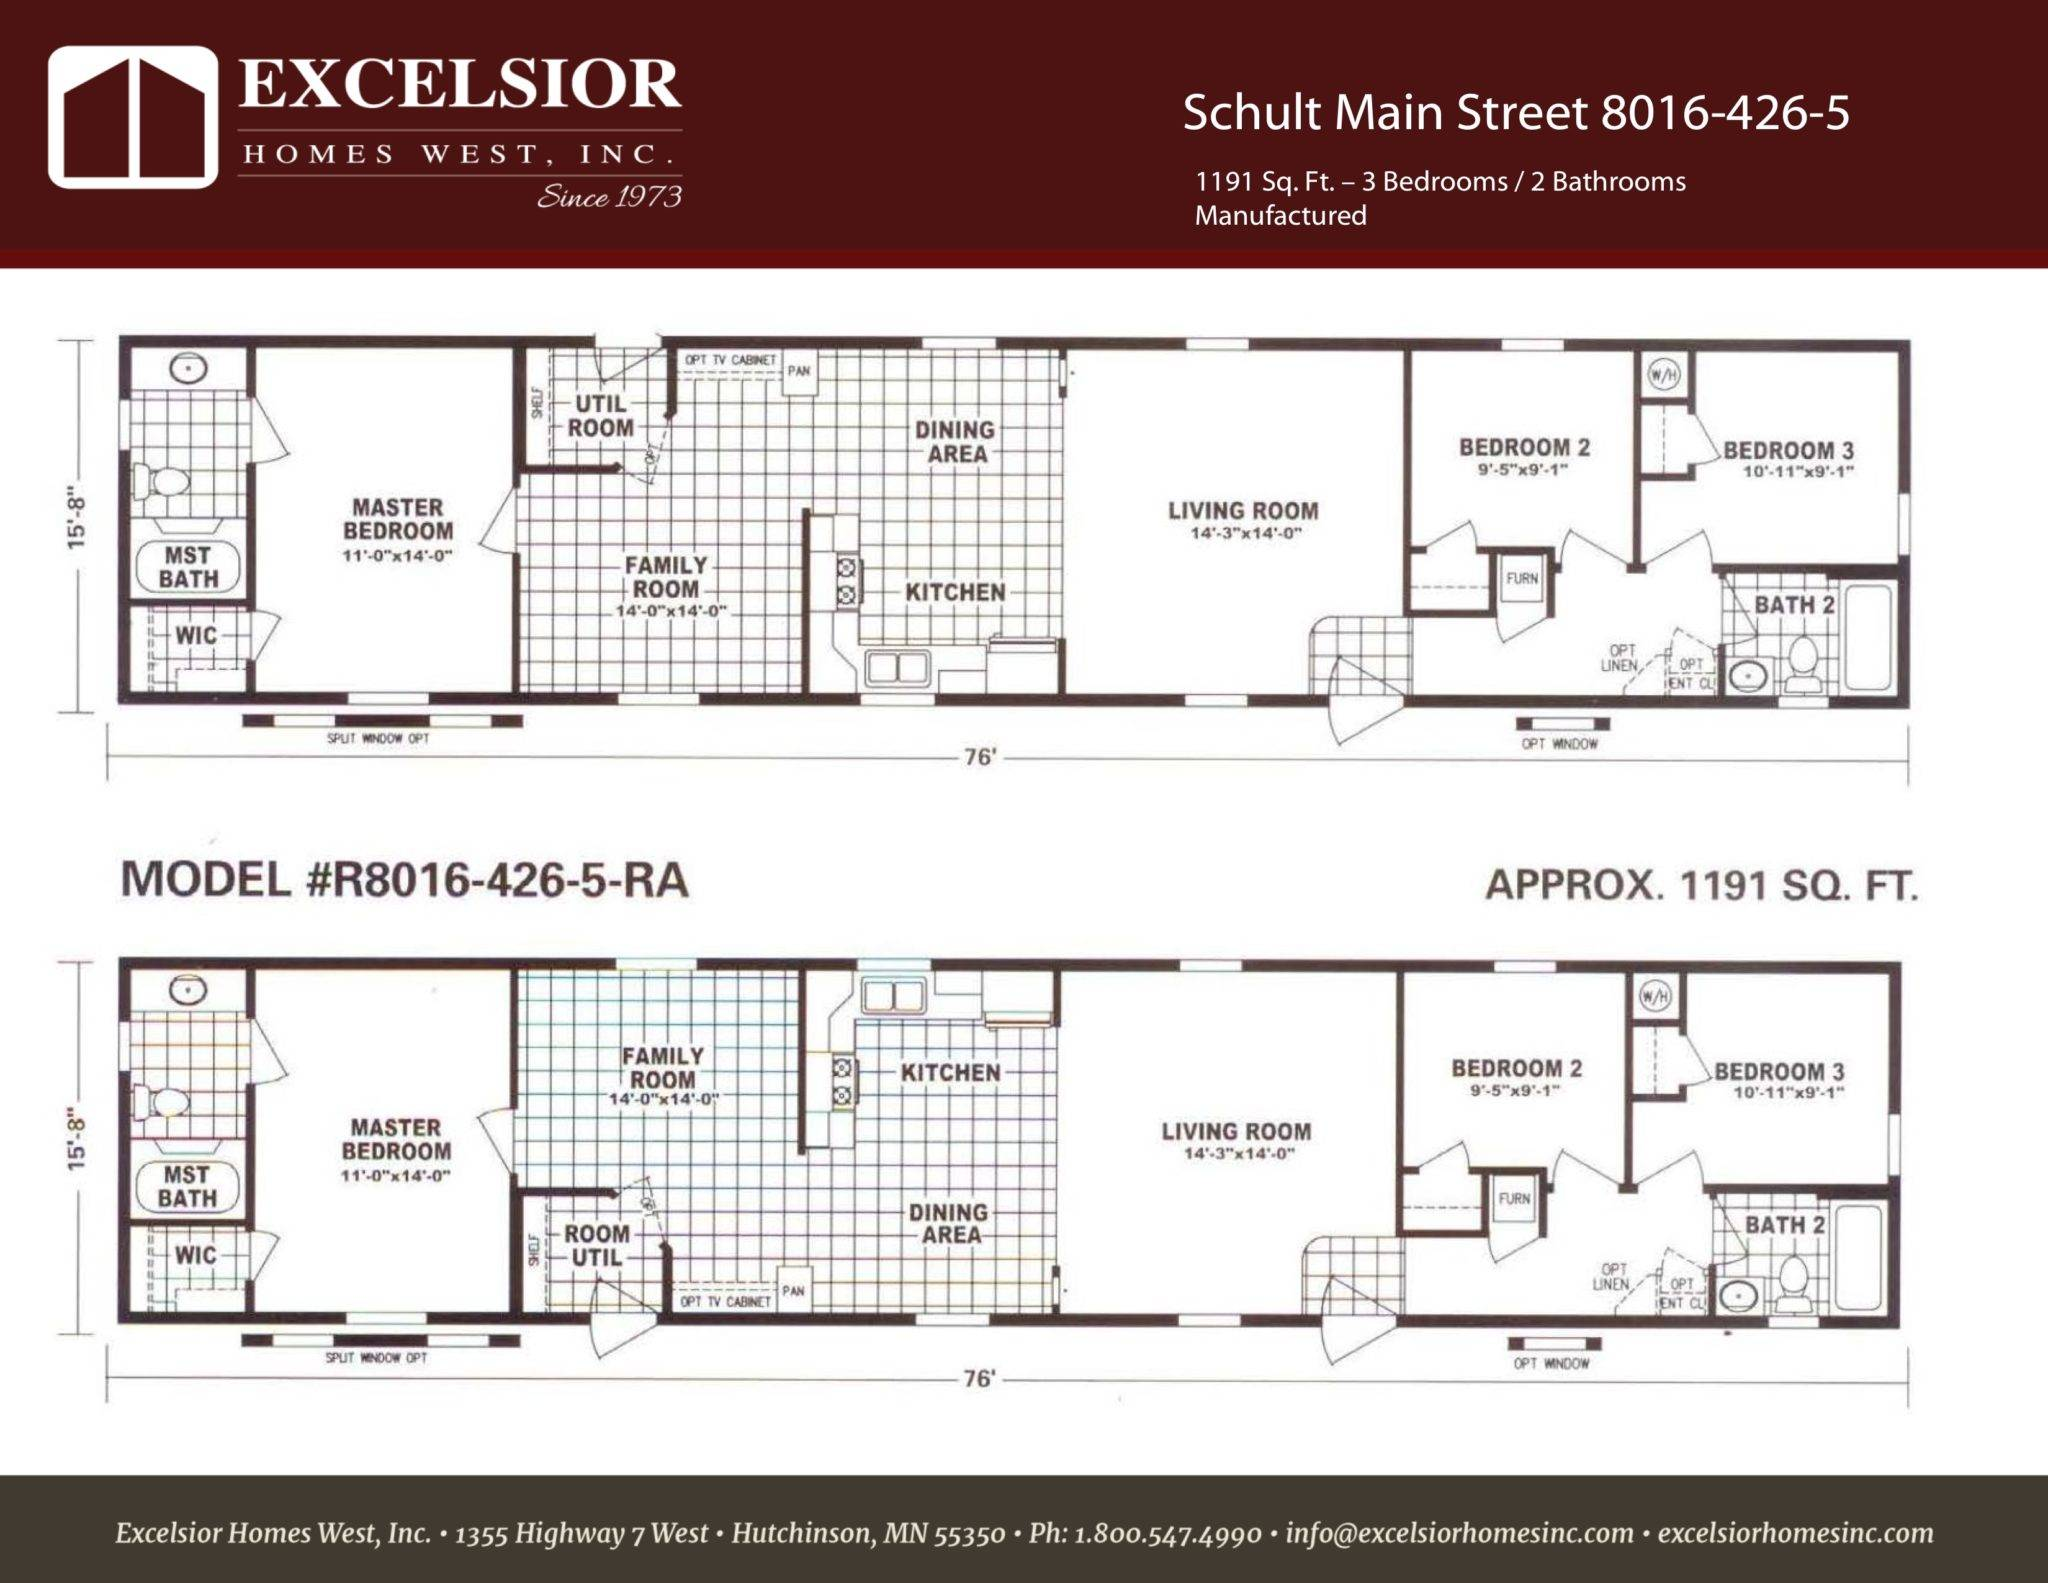 Schult Main Street Excelsior Homes West Inc